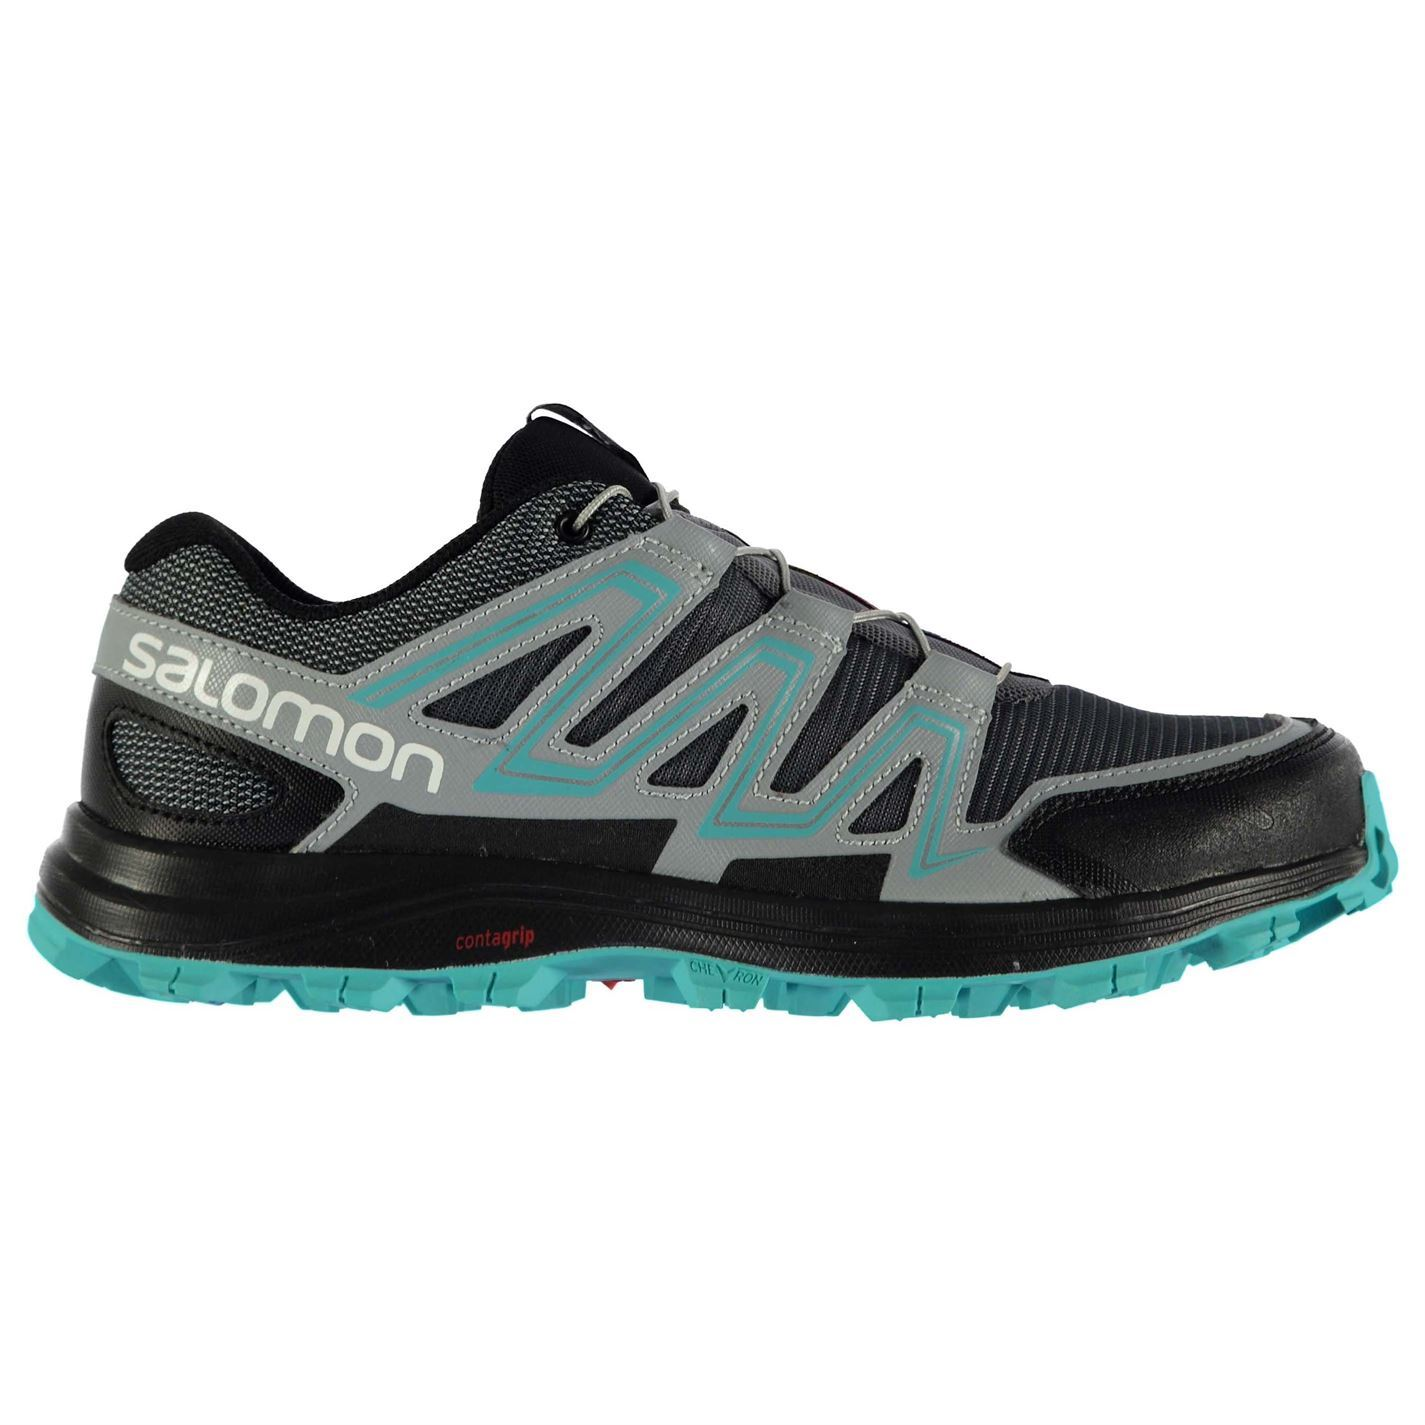 Salomon New Damenschuhe Speedtrak Running Schuhes Trainers Ortholite Outdoor Sports New Salomon 3d56eb